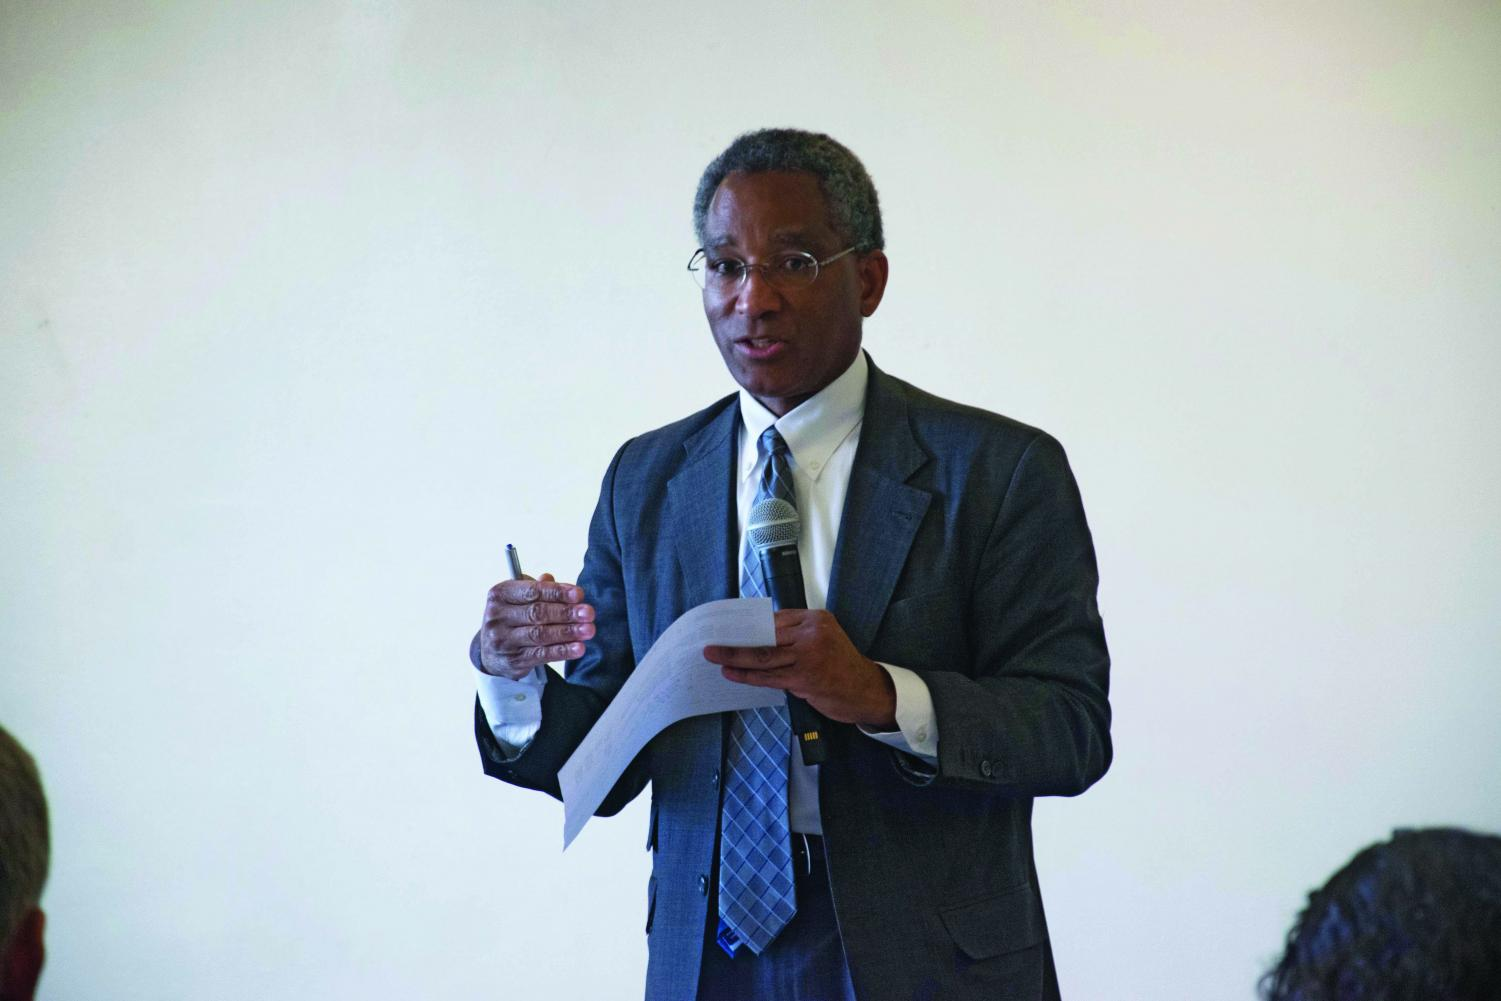 Philip Harris speaks at a 2016 event. Harris, Northwestern's vice president and general counsel, is no longer employed by the University.